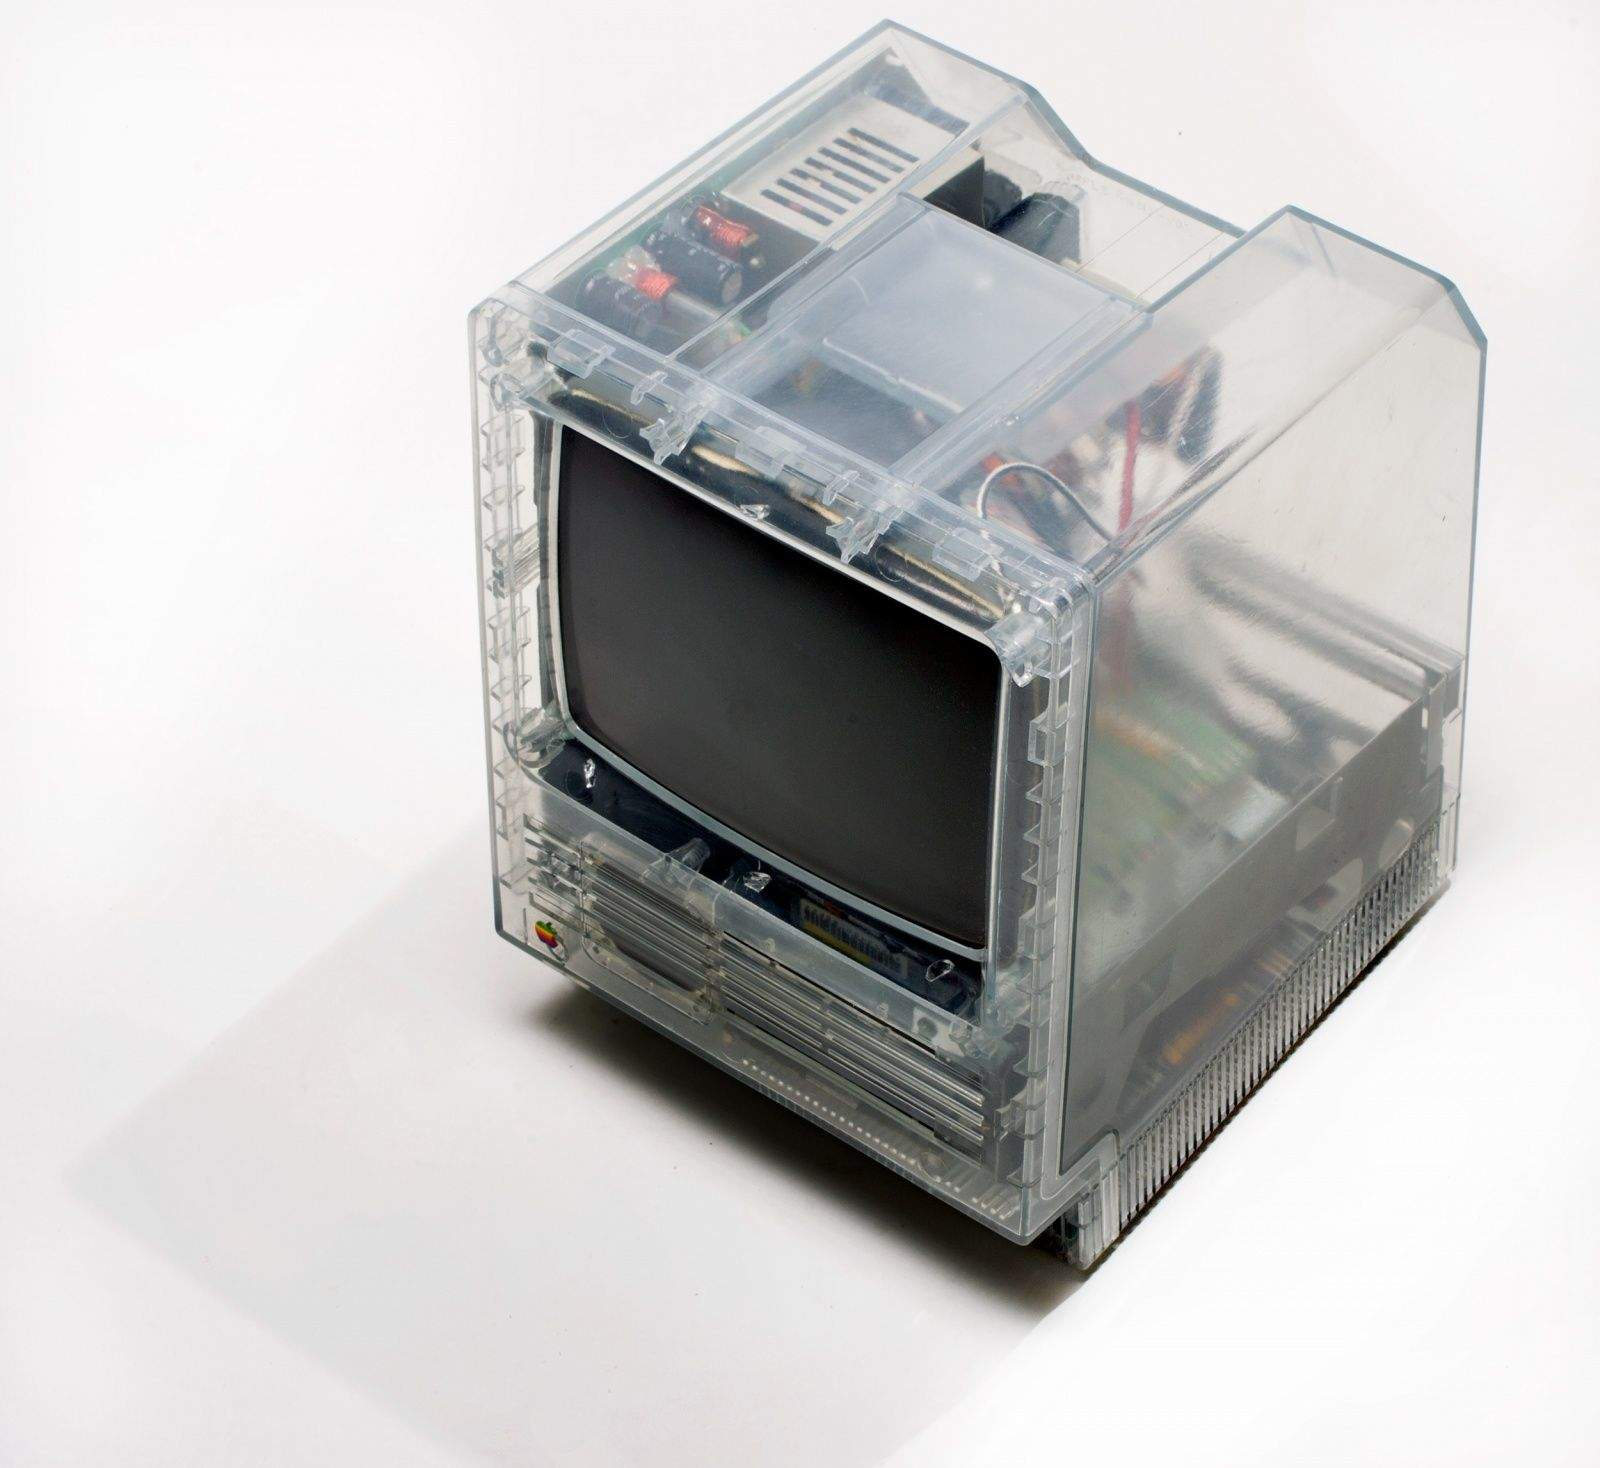 From Henry Plain's collection, this clear-sided Macintosh SE was used for engineering tests to check airflow and heat dissipation. Photo: Jim Merithew/Cult of Mac